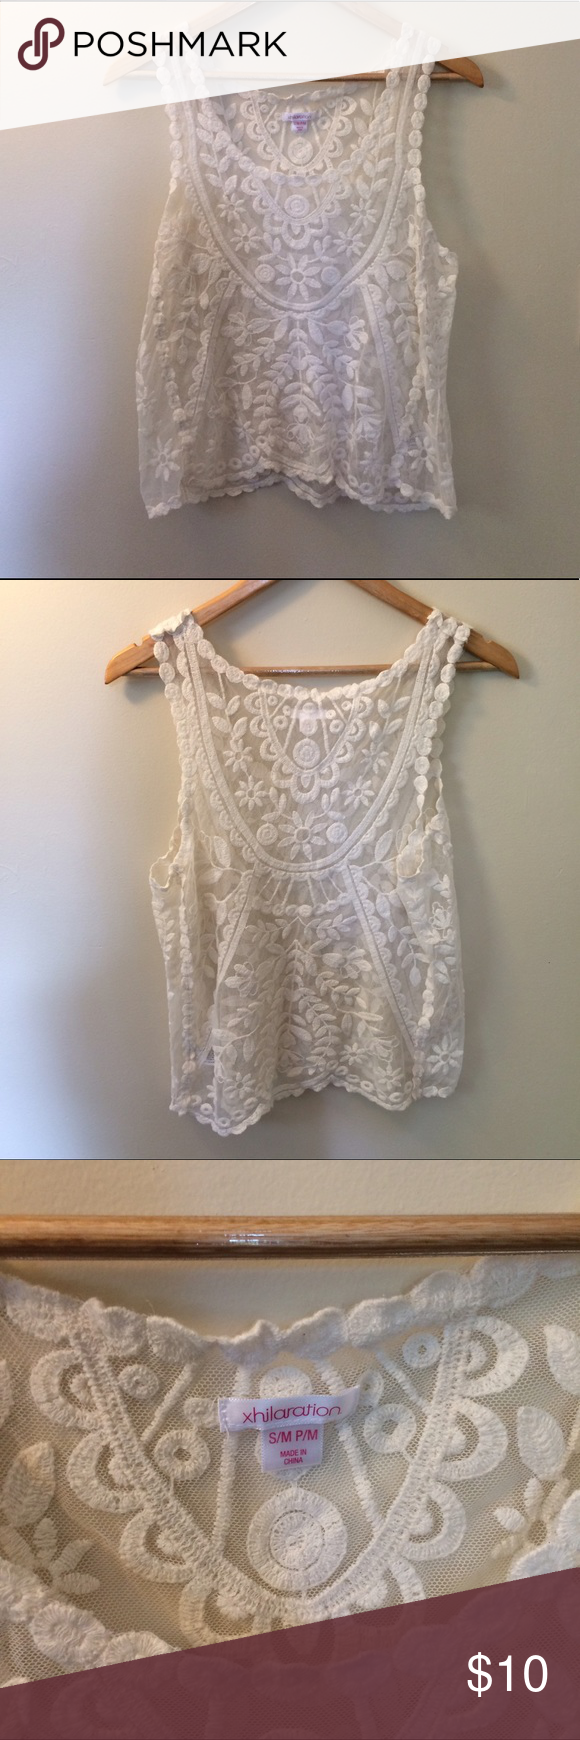 Boho Lace sleeveless shirt This shirt has a Bohemian, romantic, elegant look. It can easily be dressed up or down! Length from top to bottom is 23 1/2 inches. Length across the midsection is 19 inches. Tag says this is a S/M or petite M Xhilaration Tops Tank Tops